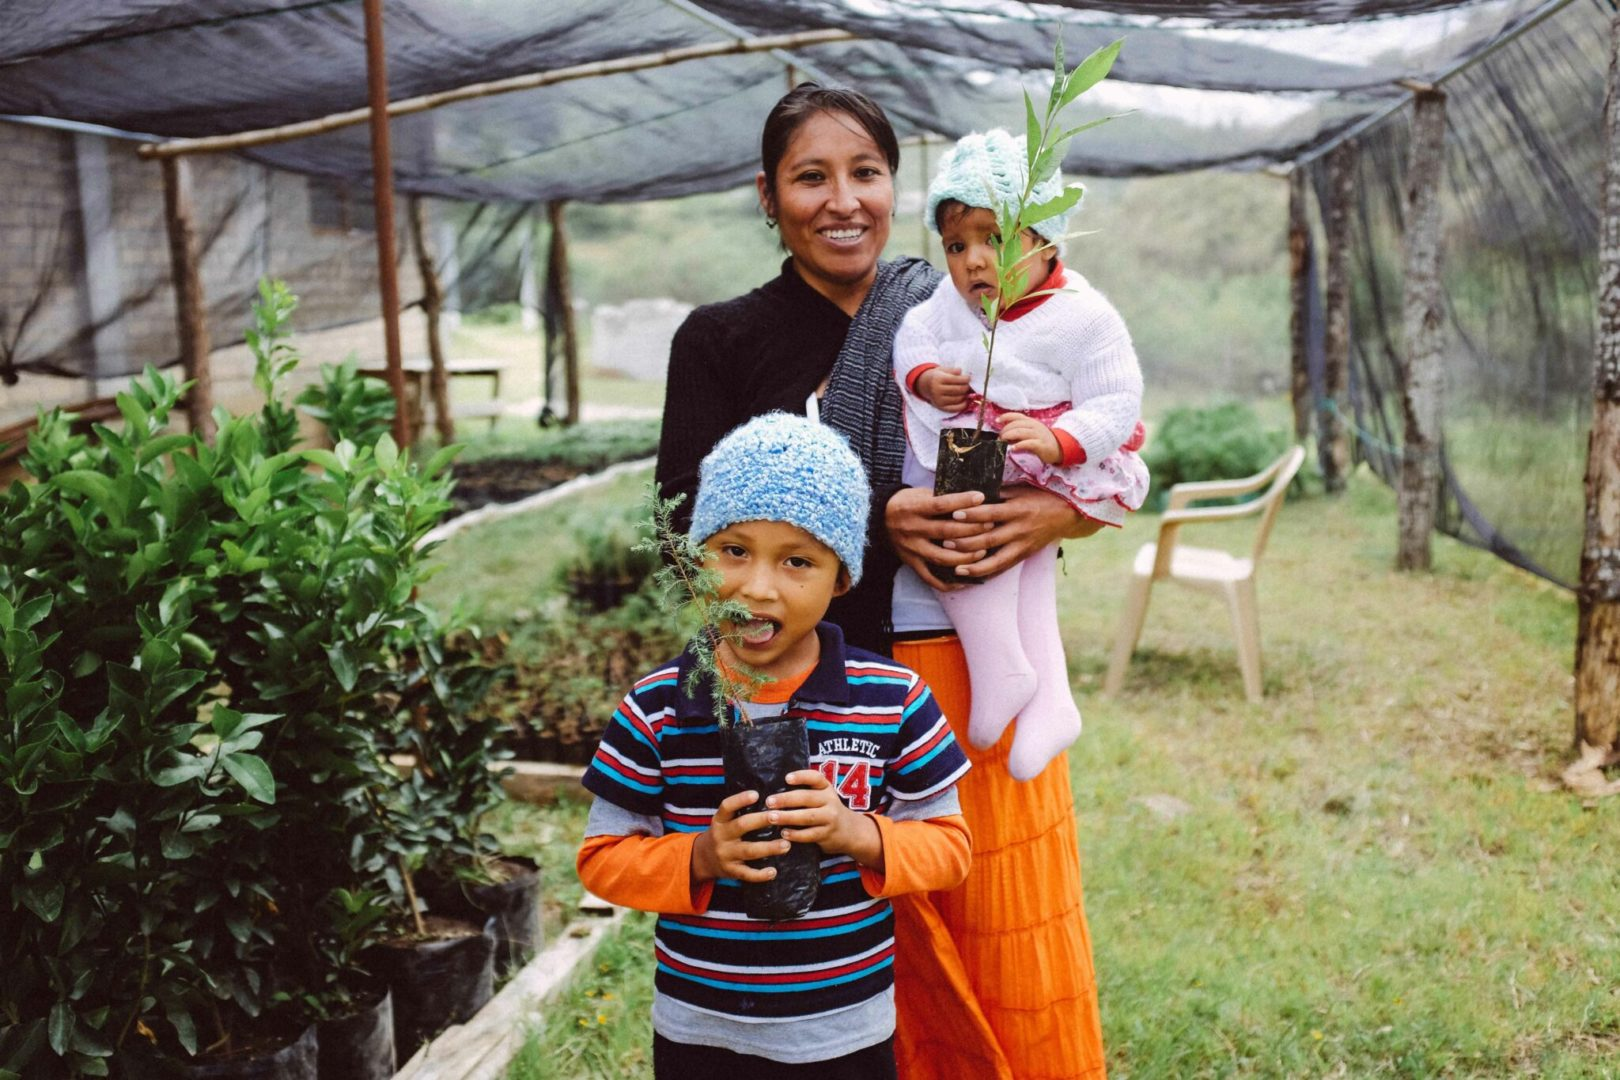 Families in Mexico experience the way the environment impacts their economic wellbeing.